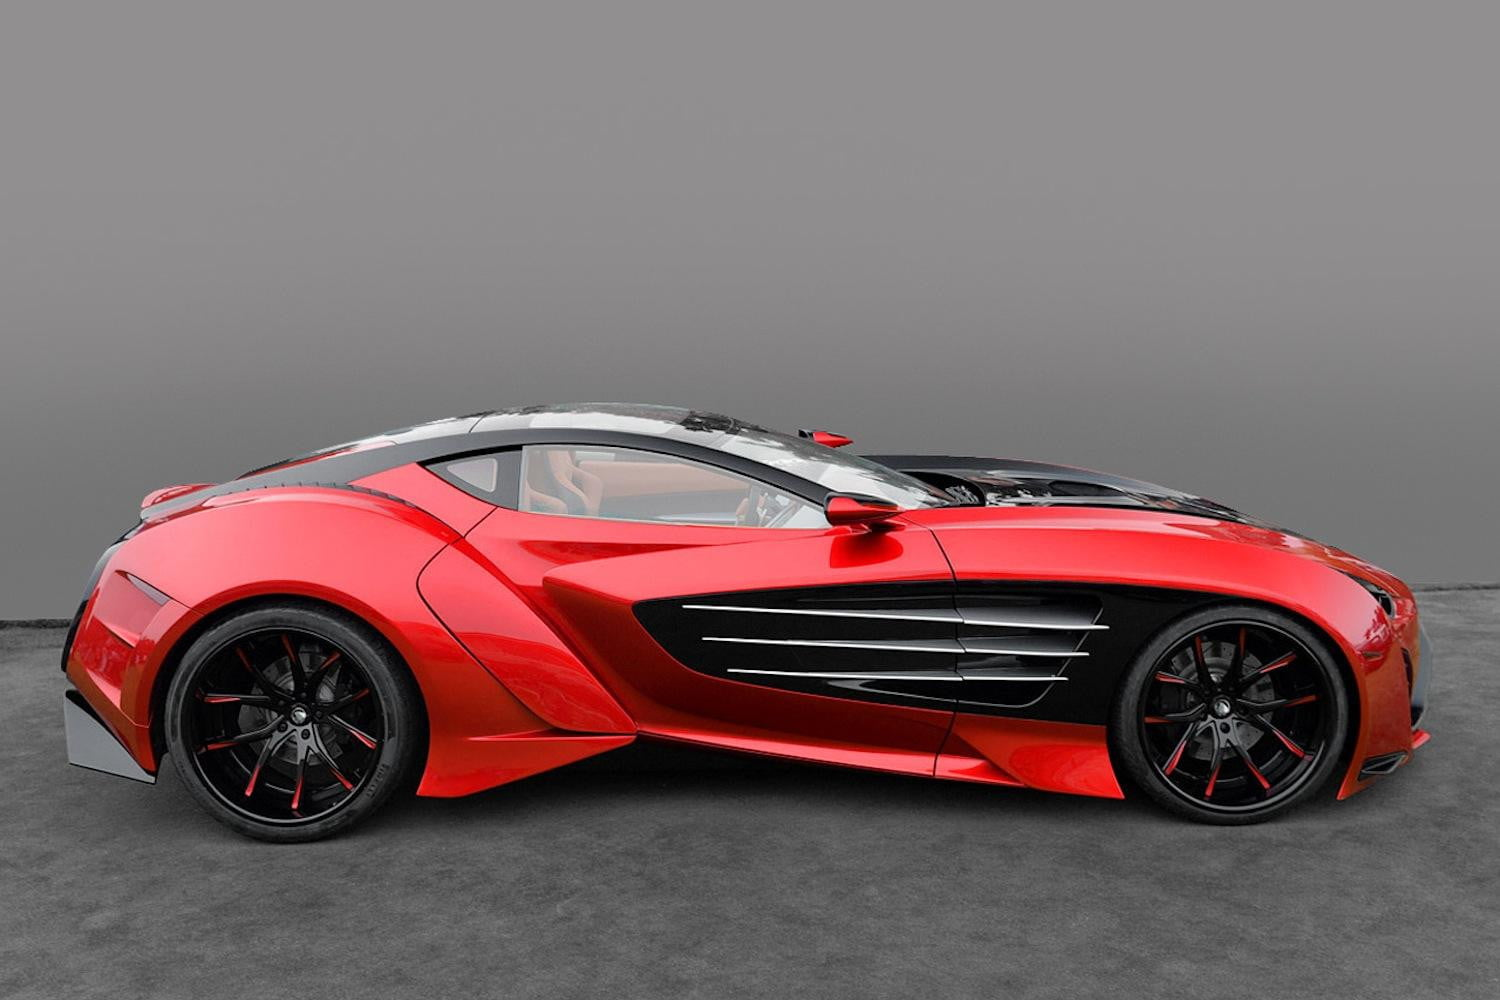 Cars For Sale Under 1000 >> The Laraki Epitome concept car looks like the result of a fever dream | Digital Trends